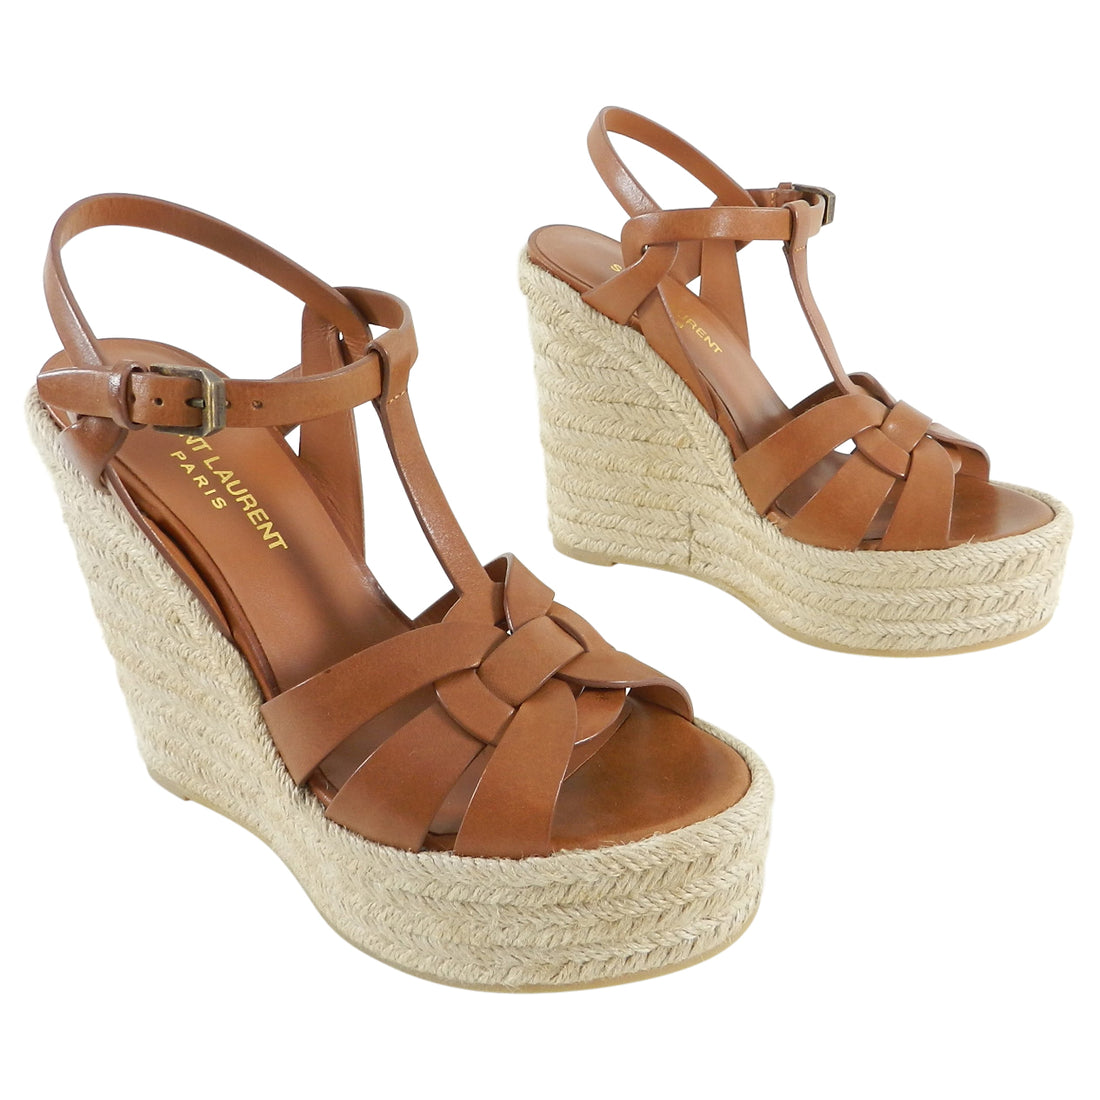 Saint Laurent Brown Tribute Espadrille Wedge Sandals - 37